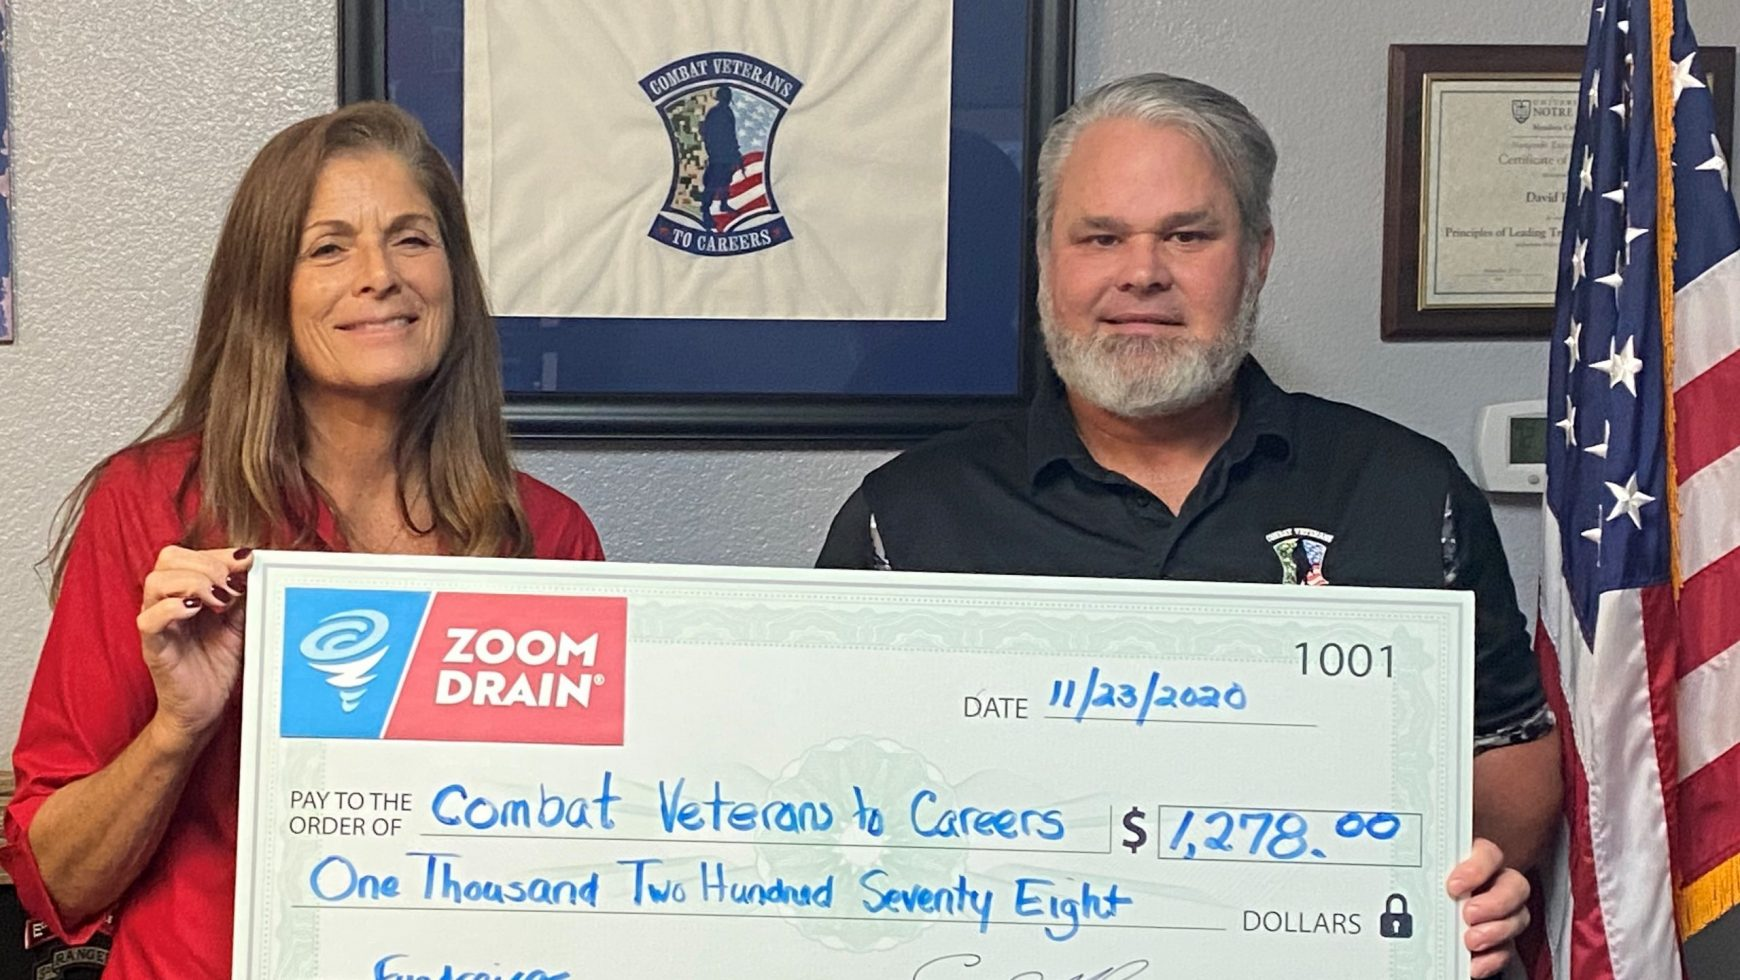 ZOOM Drain of Central FL Donates to CVC